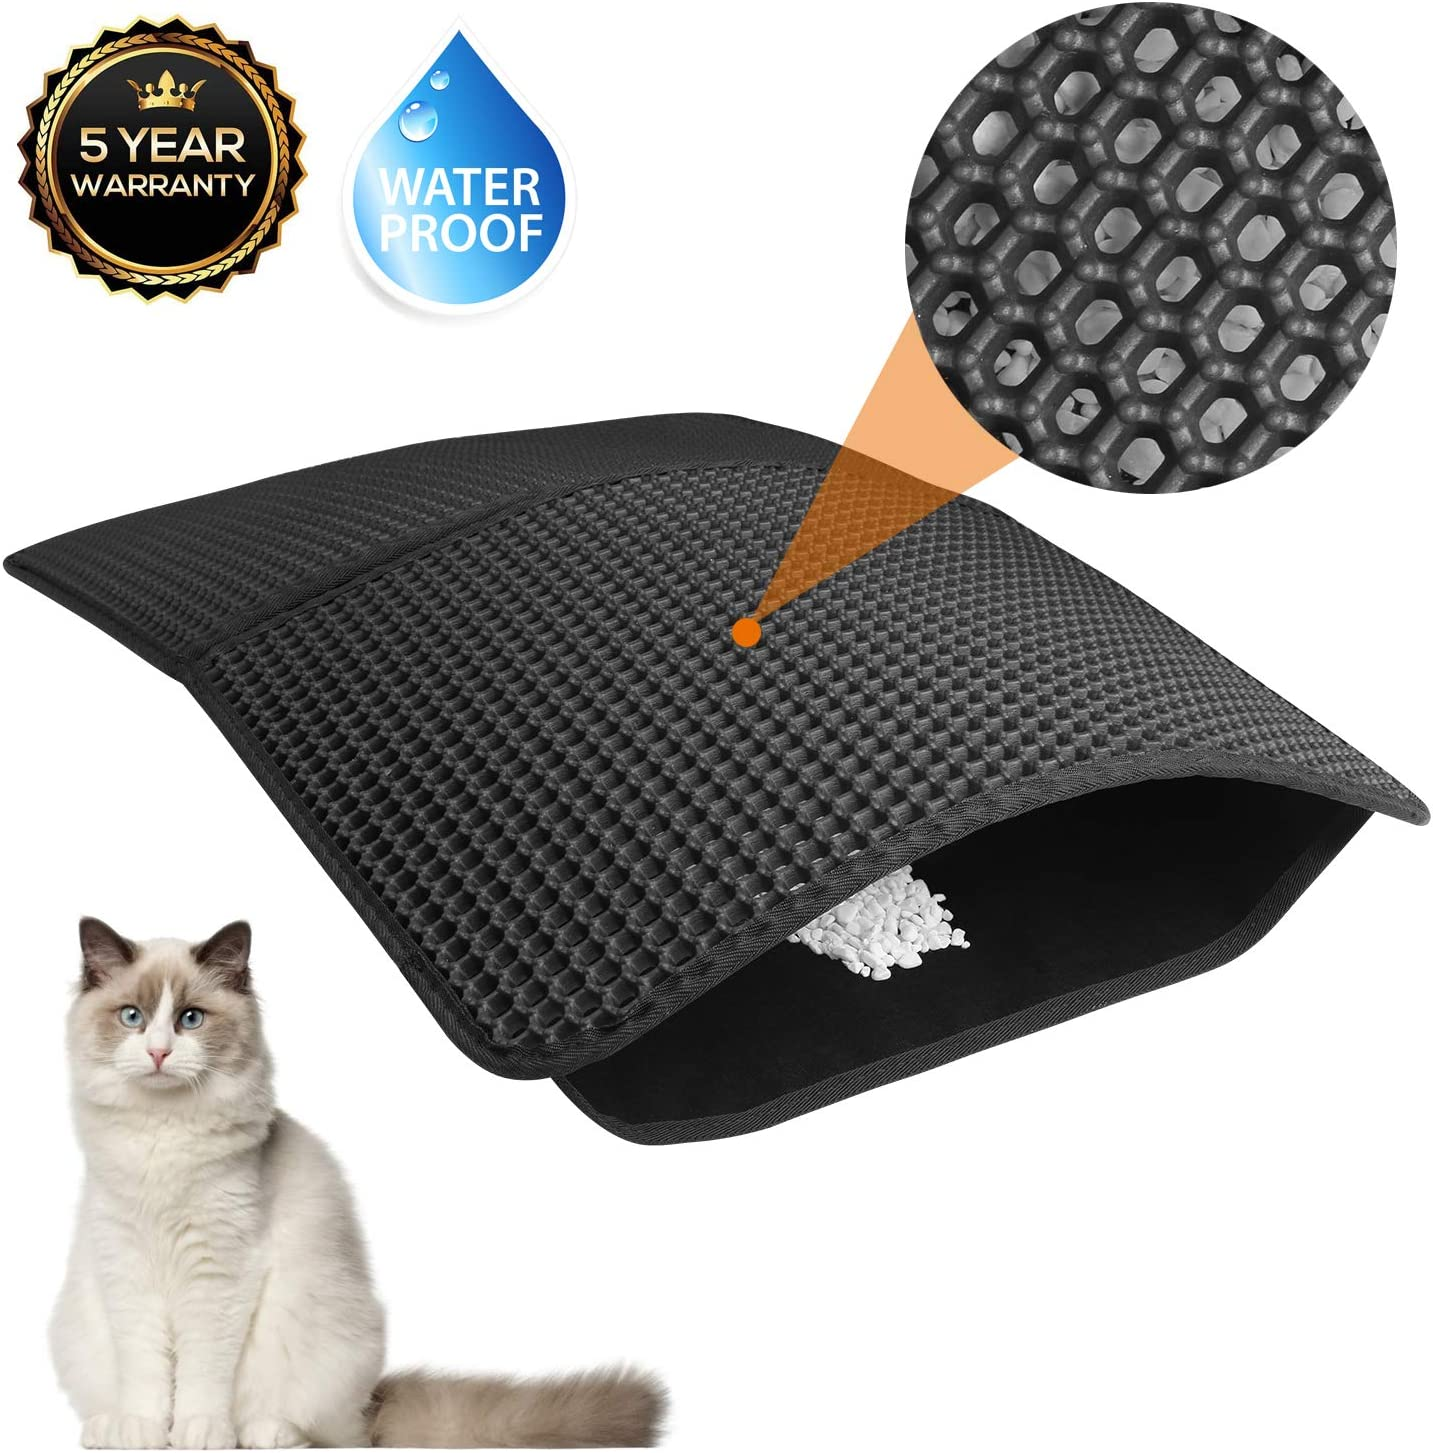 Akarden Cat Litter Mat, Waterproof Urine Proof Cat Litter Trapping Mats(25.5''X17.7''), Double-Layer Design, Easy to Clean, Scatter Control(Black) 7146oLePGFL